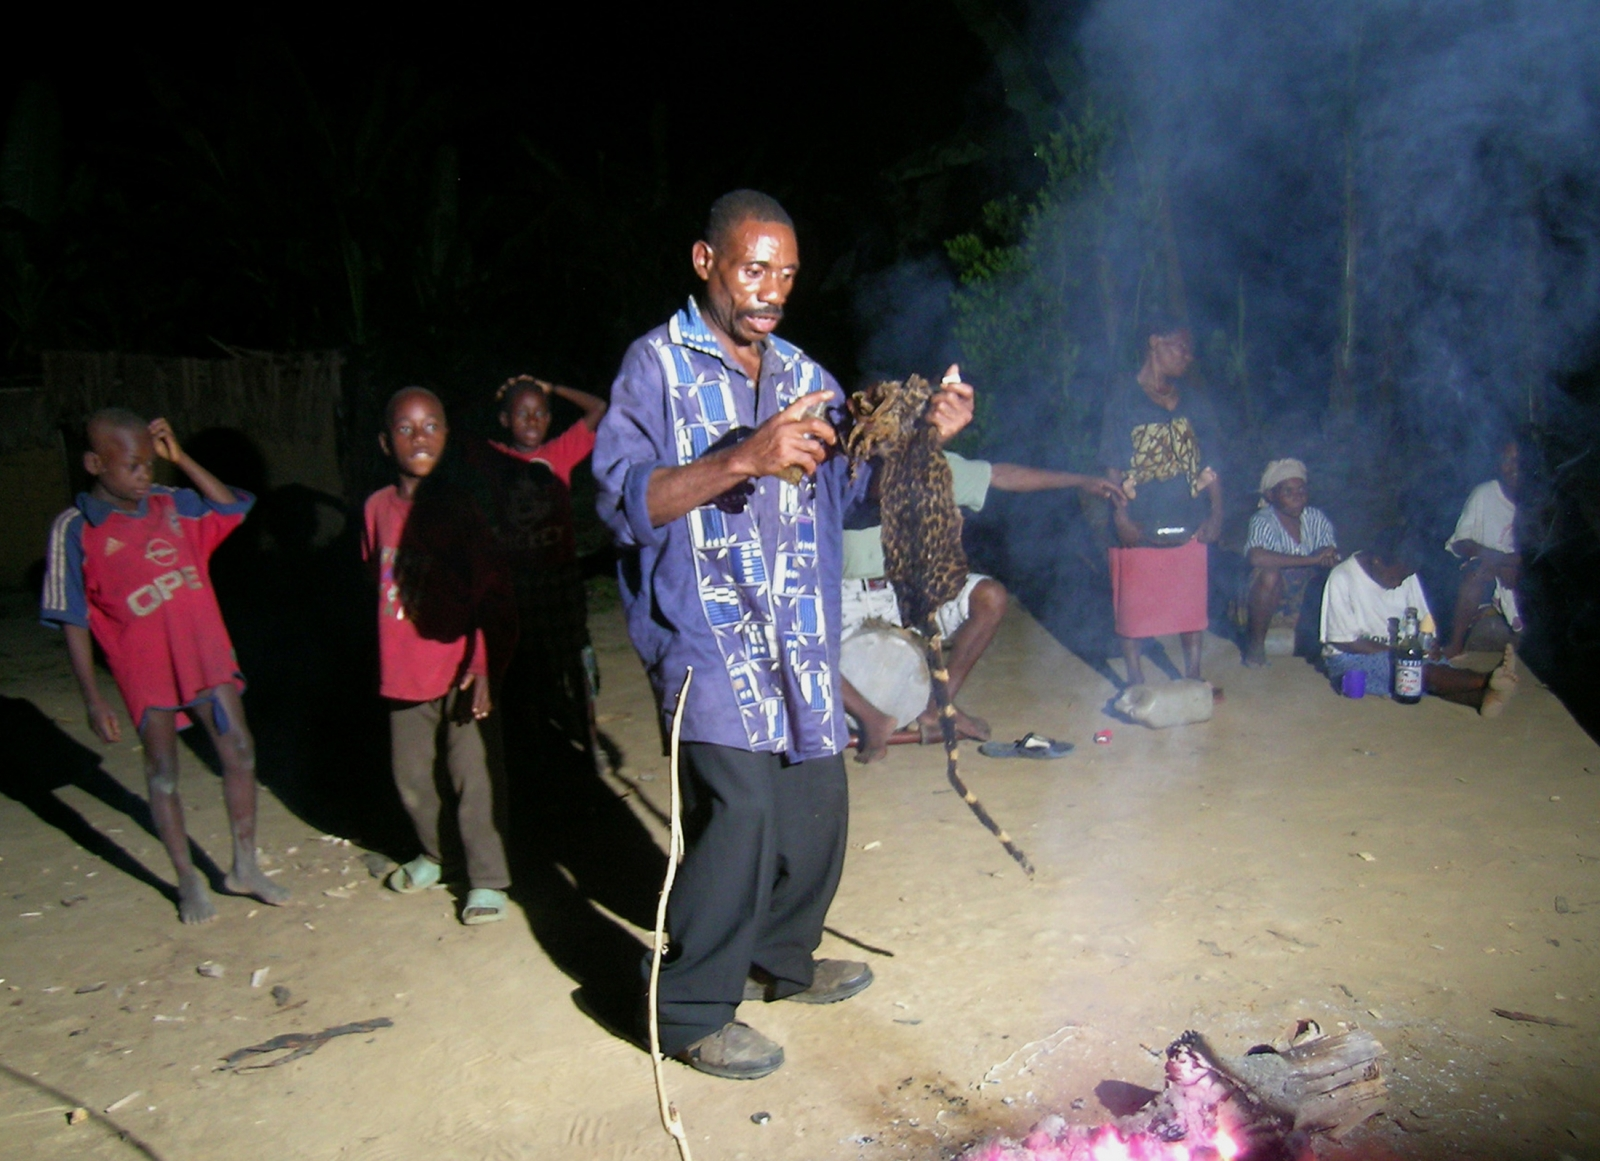 A African sorcerer performs a dance in front of a sacred fire